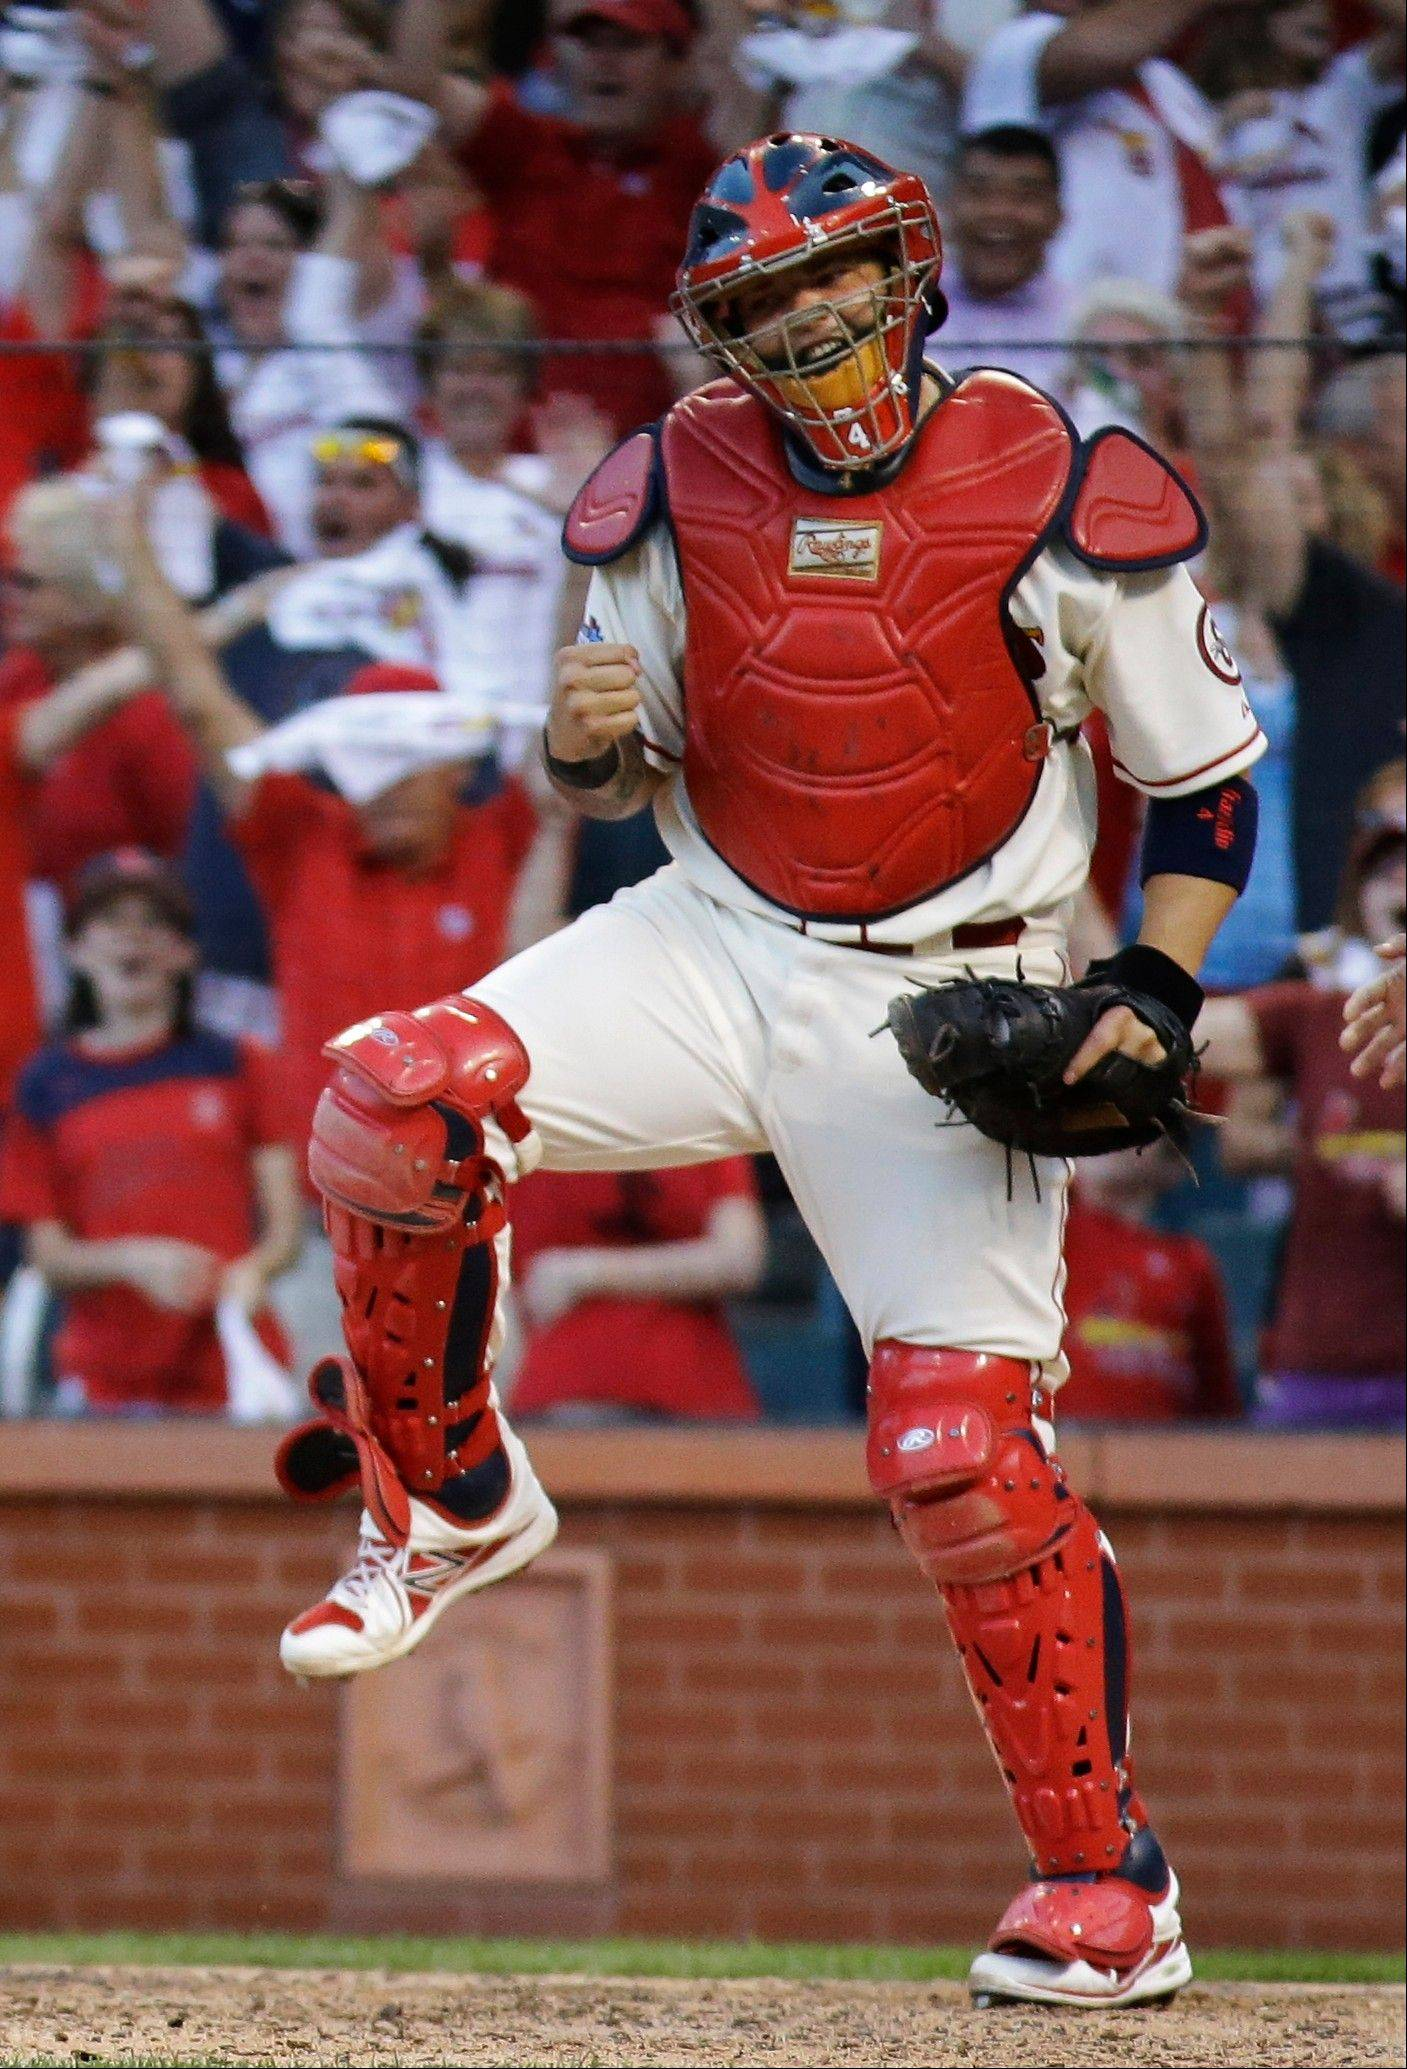 Catcher Yadier Molina is just one of the many reasons why the Cardinals just keep getting the job done year after year.